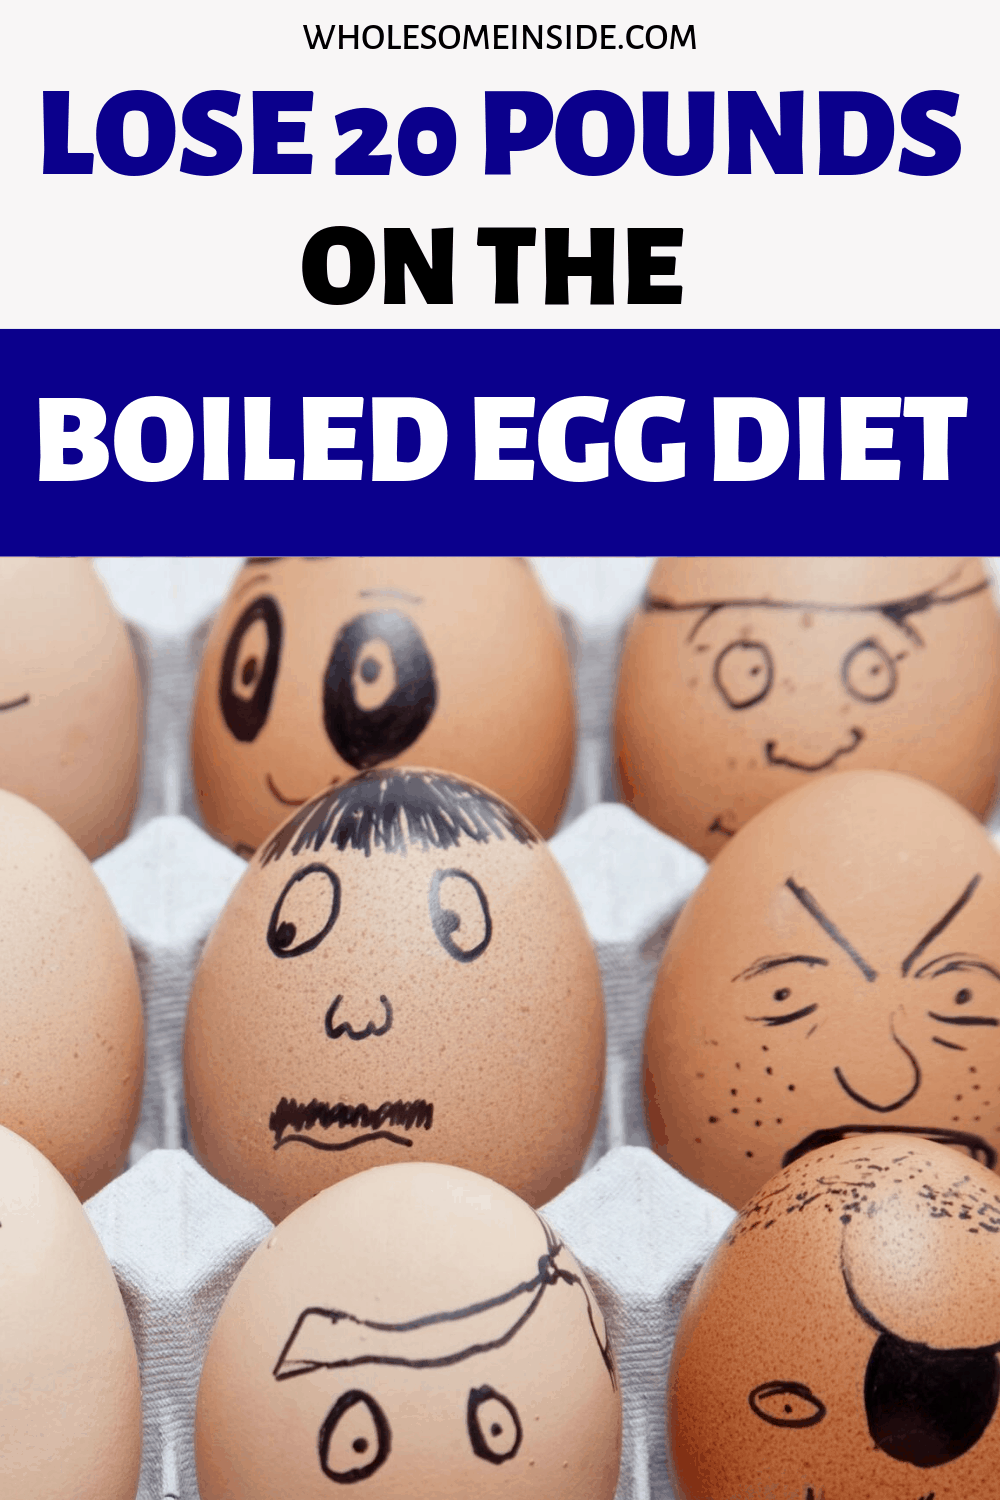 lose 20lbs in 2 weeks on the boiled egg diet.